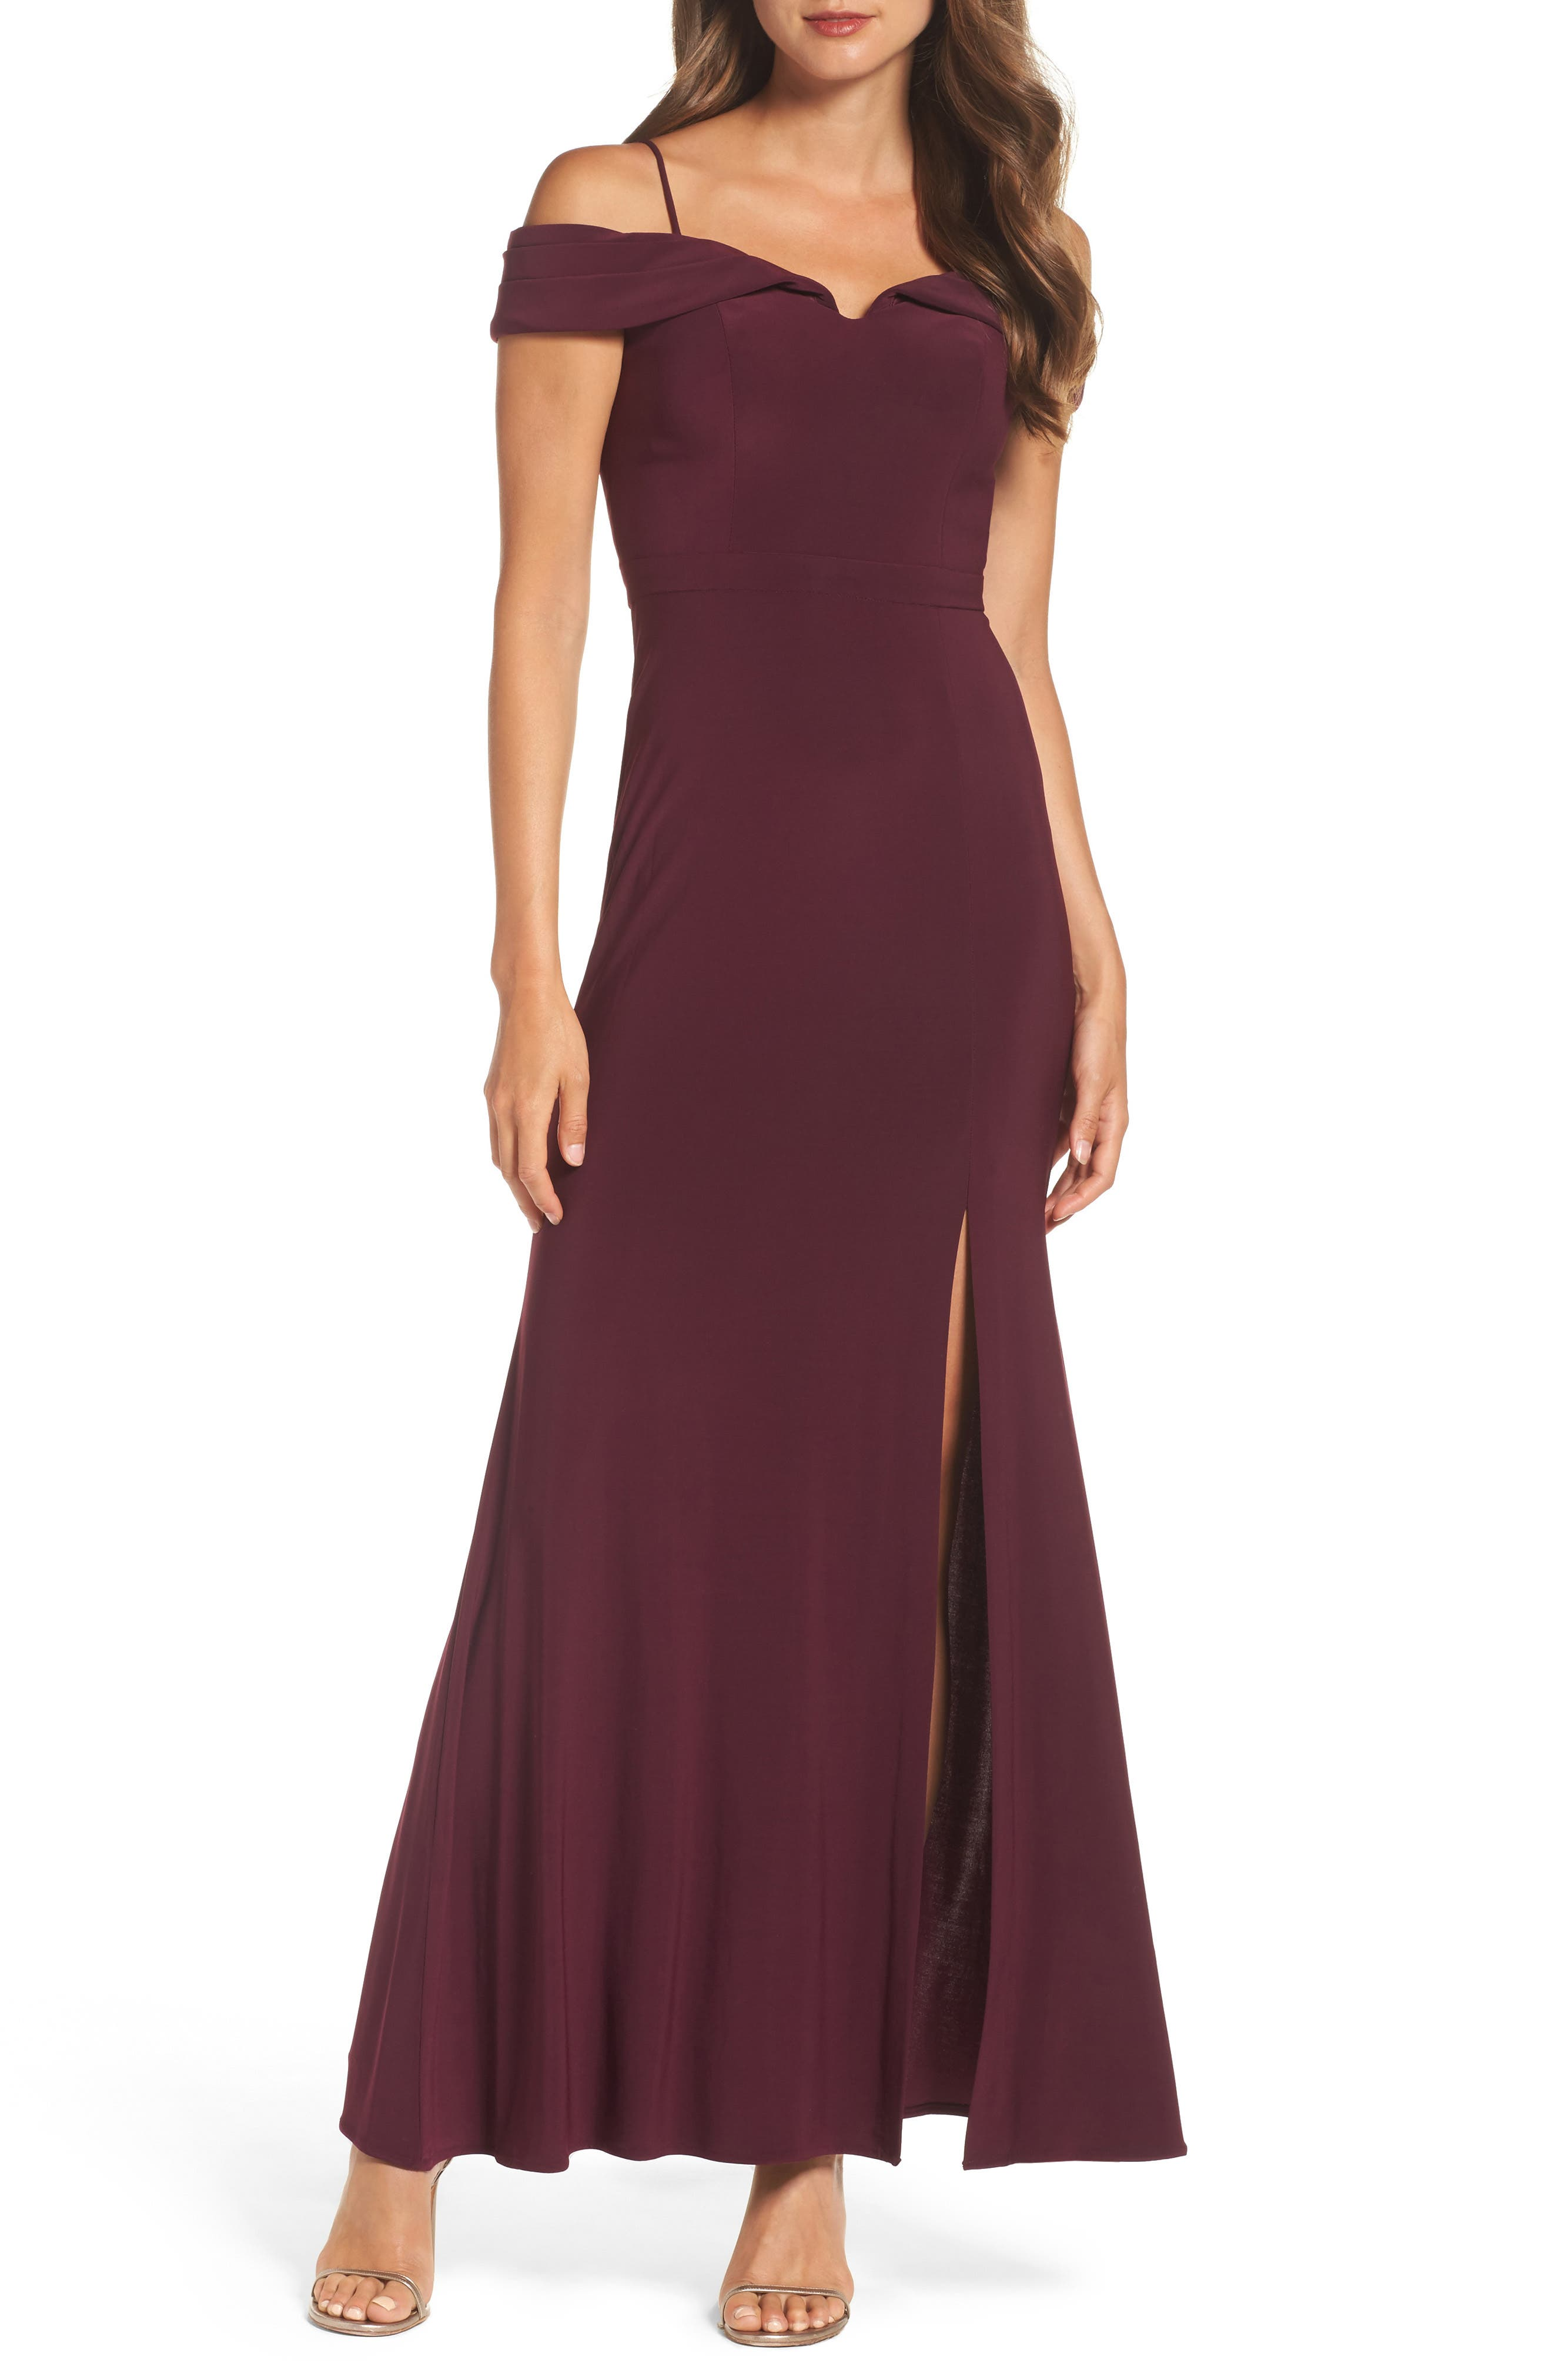 Alternate Image 1 Selected - Morgan & Co. Off the Shoulder Gown